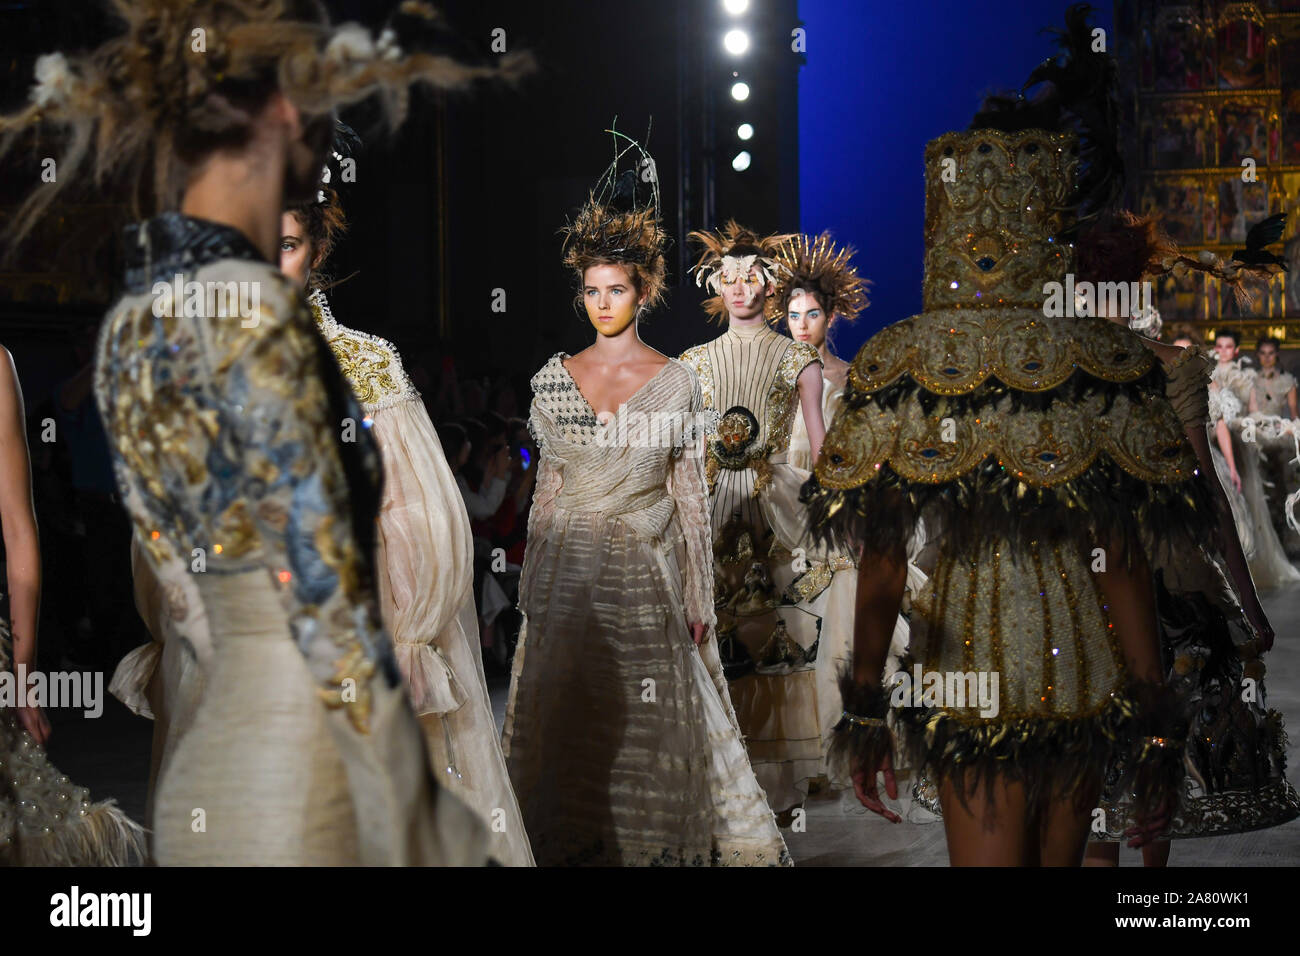 Guo Pei Fashion In Motion At The Victoria Albert Museum This Was Guo Pei S First Catwalk Show In The Uk Showcasing Her Alternate Universe Collection Guo Pei Is One Of China S